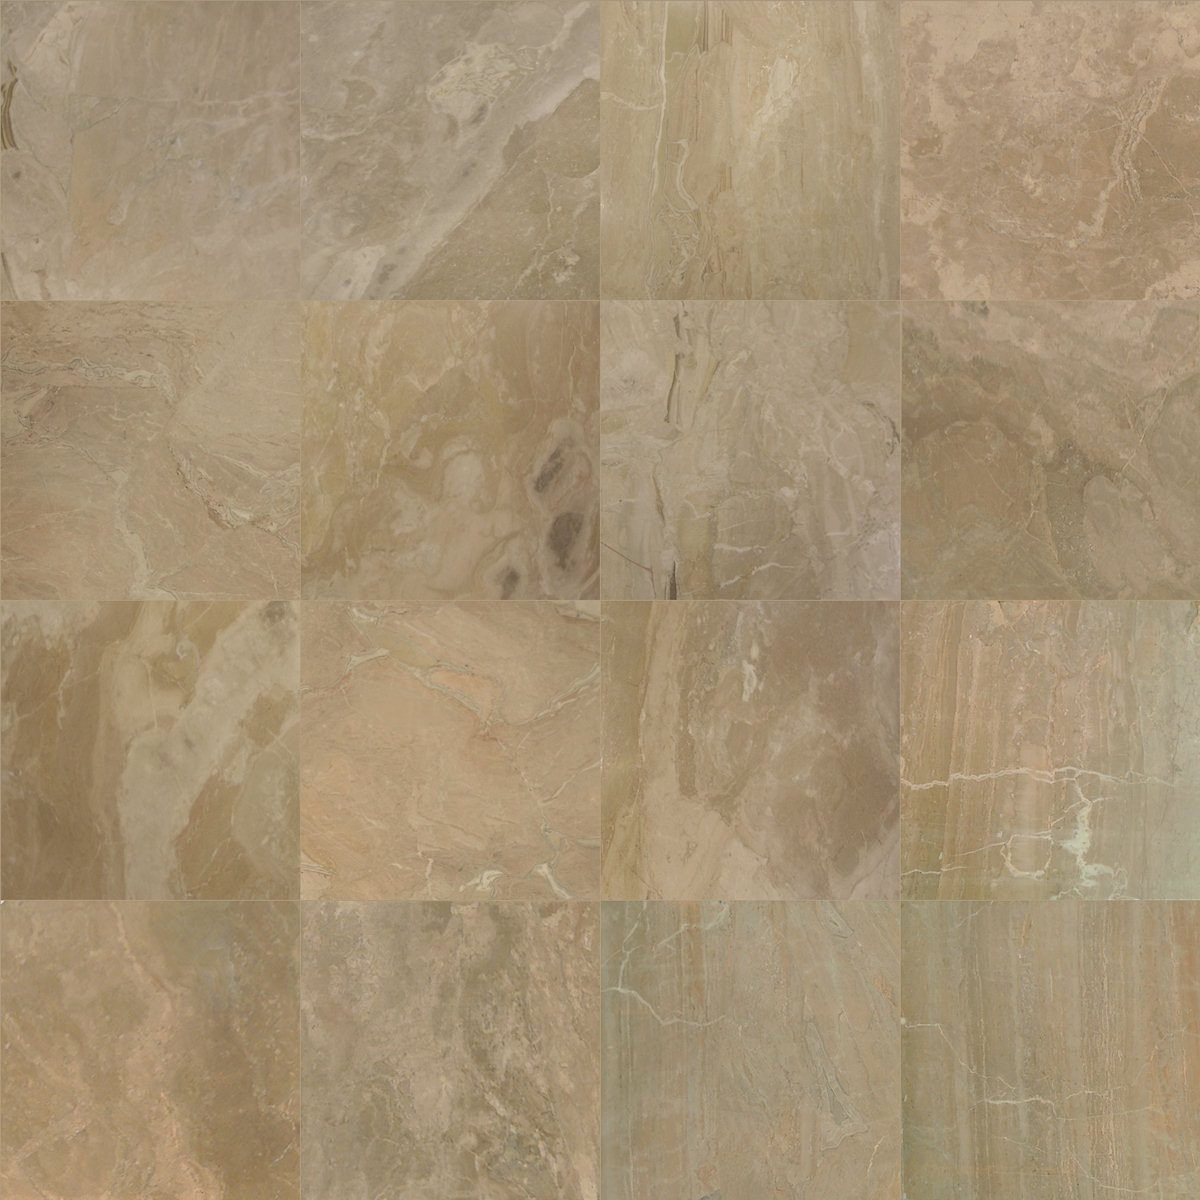 Texture wednesday quotes quotesgram - Textuur tiling wit ...